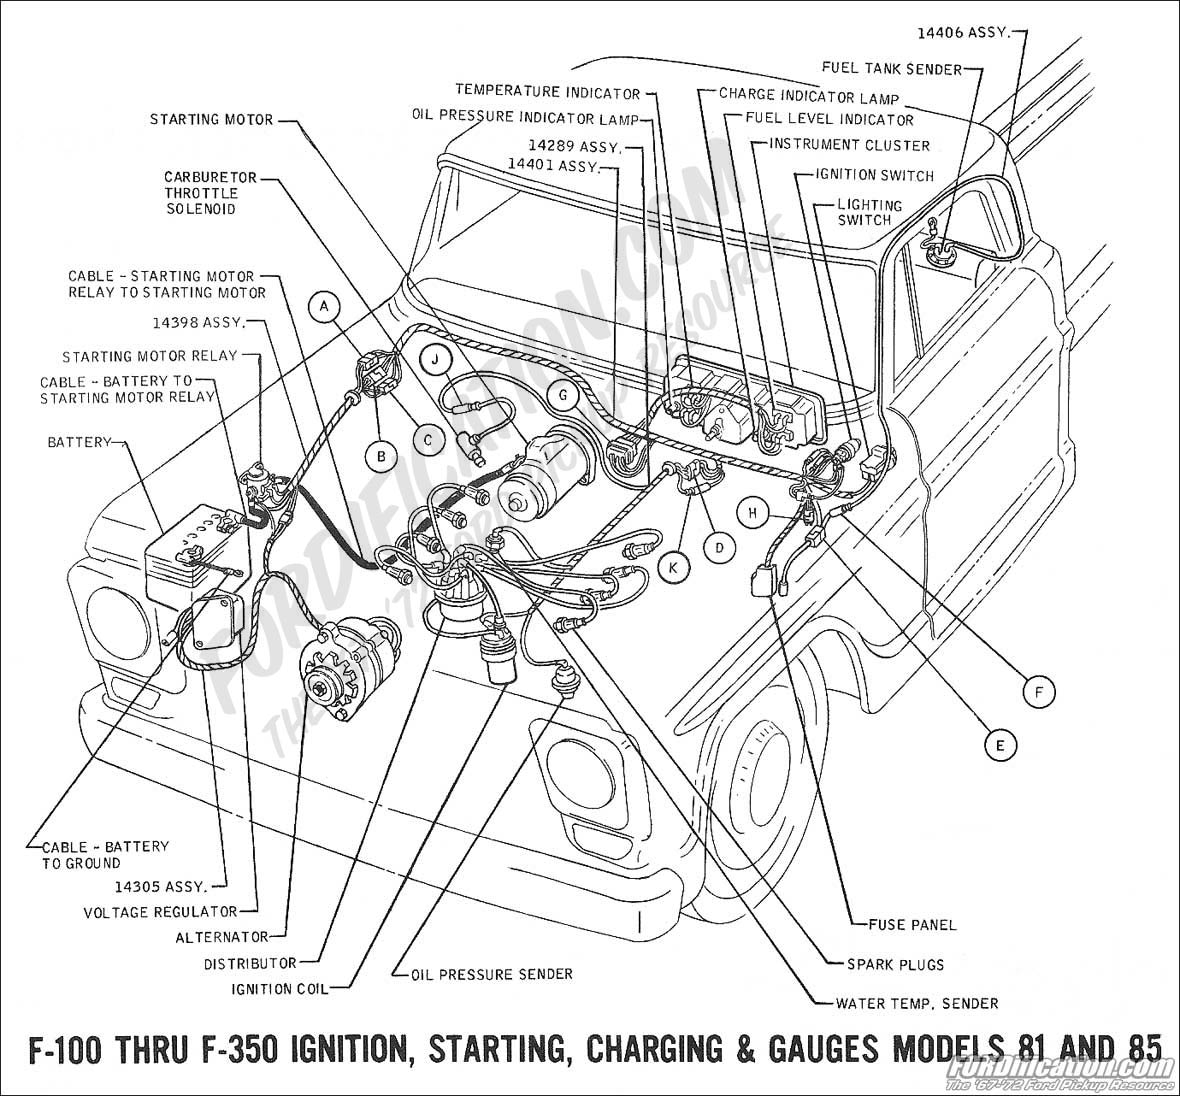 ford truck technical drawings and schematics section h wiring1969 f 100 thru f 350 ignition, charging, starting, and gauges 01